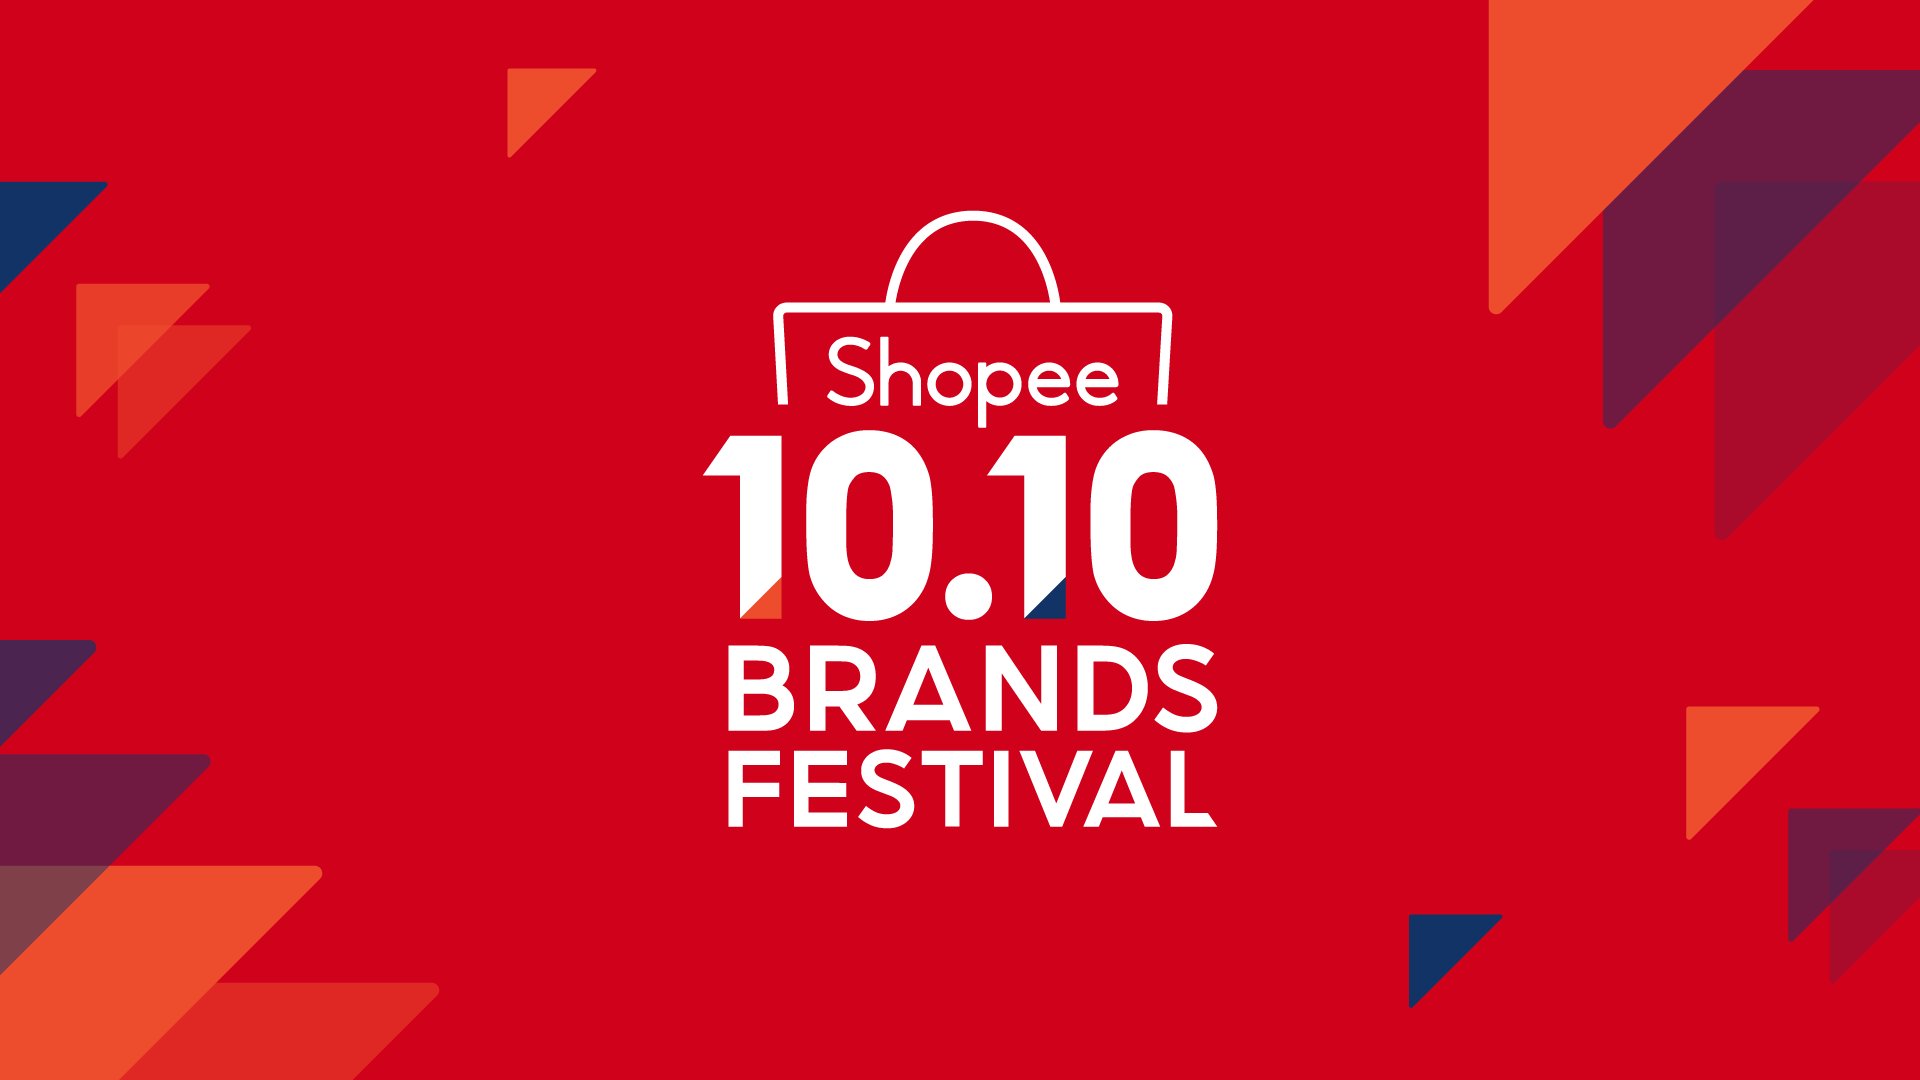 Shopee announces the region's first partnership program with five of the biggest media agencies to help brands amplify their online presence, starting with its annual 10.10 Brands Festival